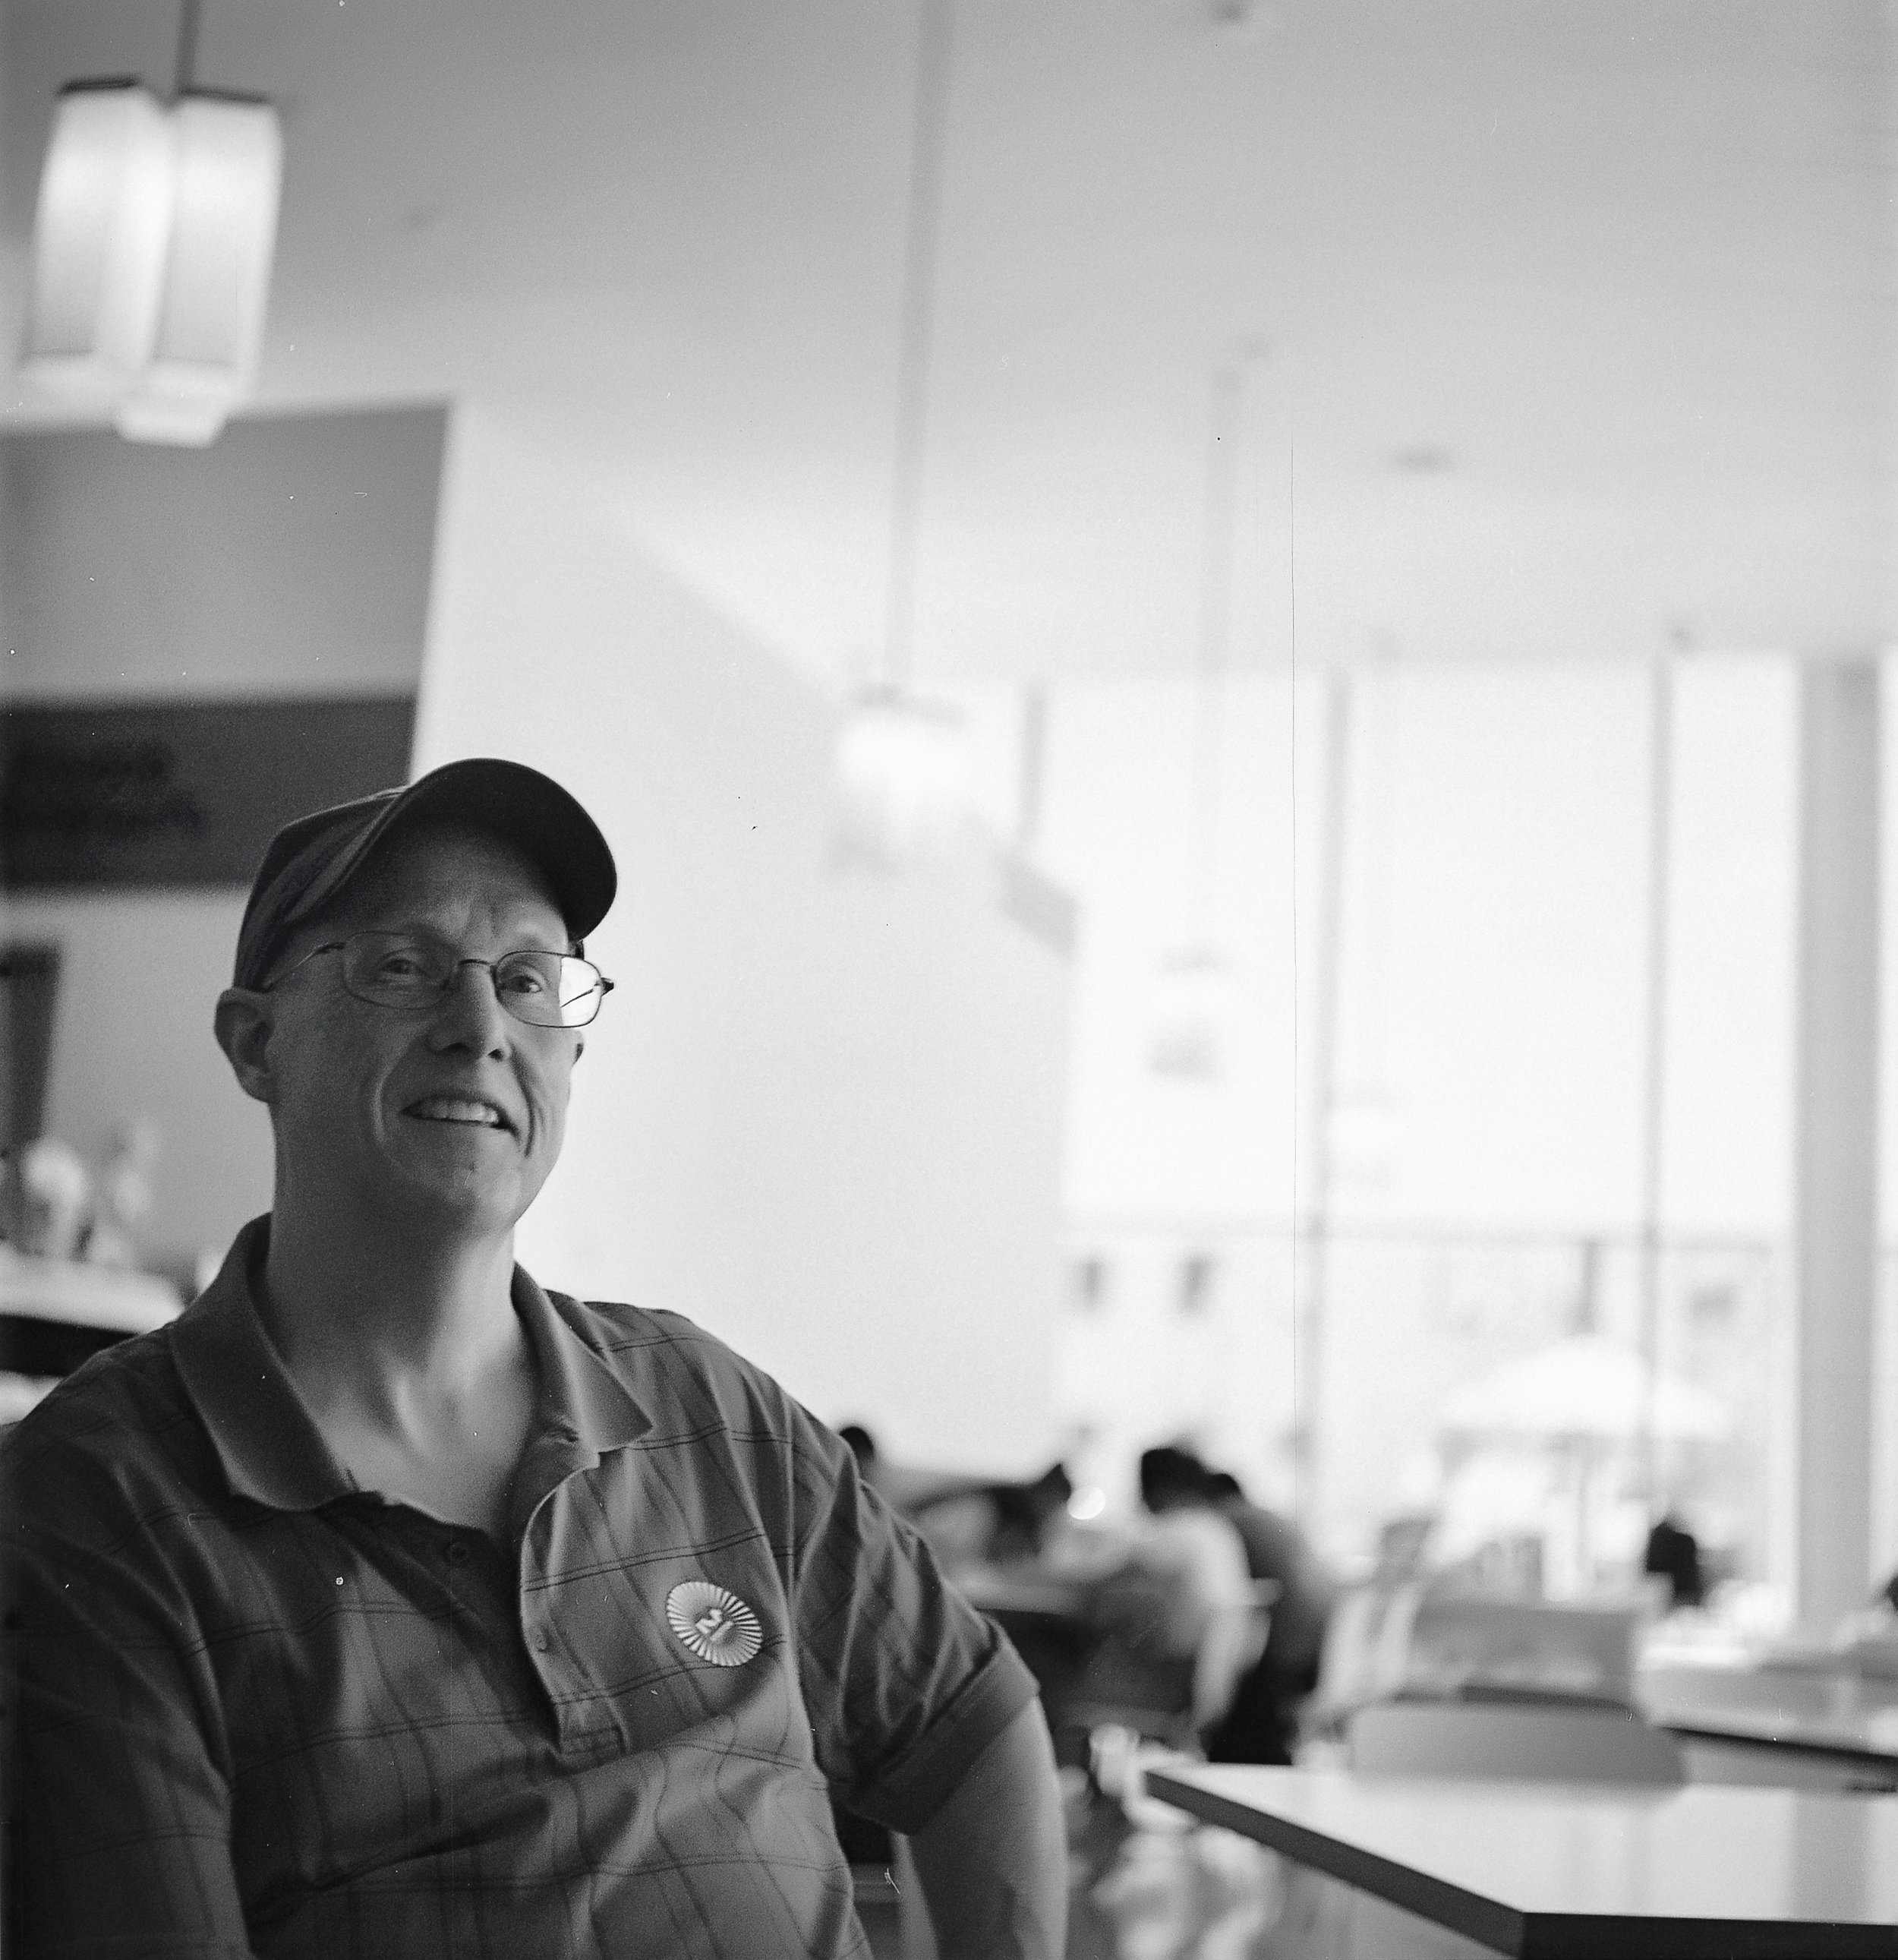 Dave | Ellwood Thompson's Cafe | Institute for Contemporary Art | Richmond, Virginia